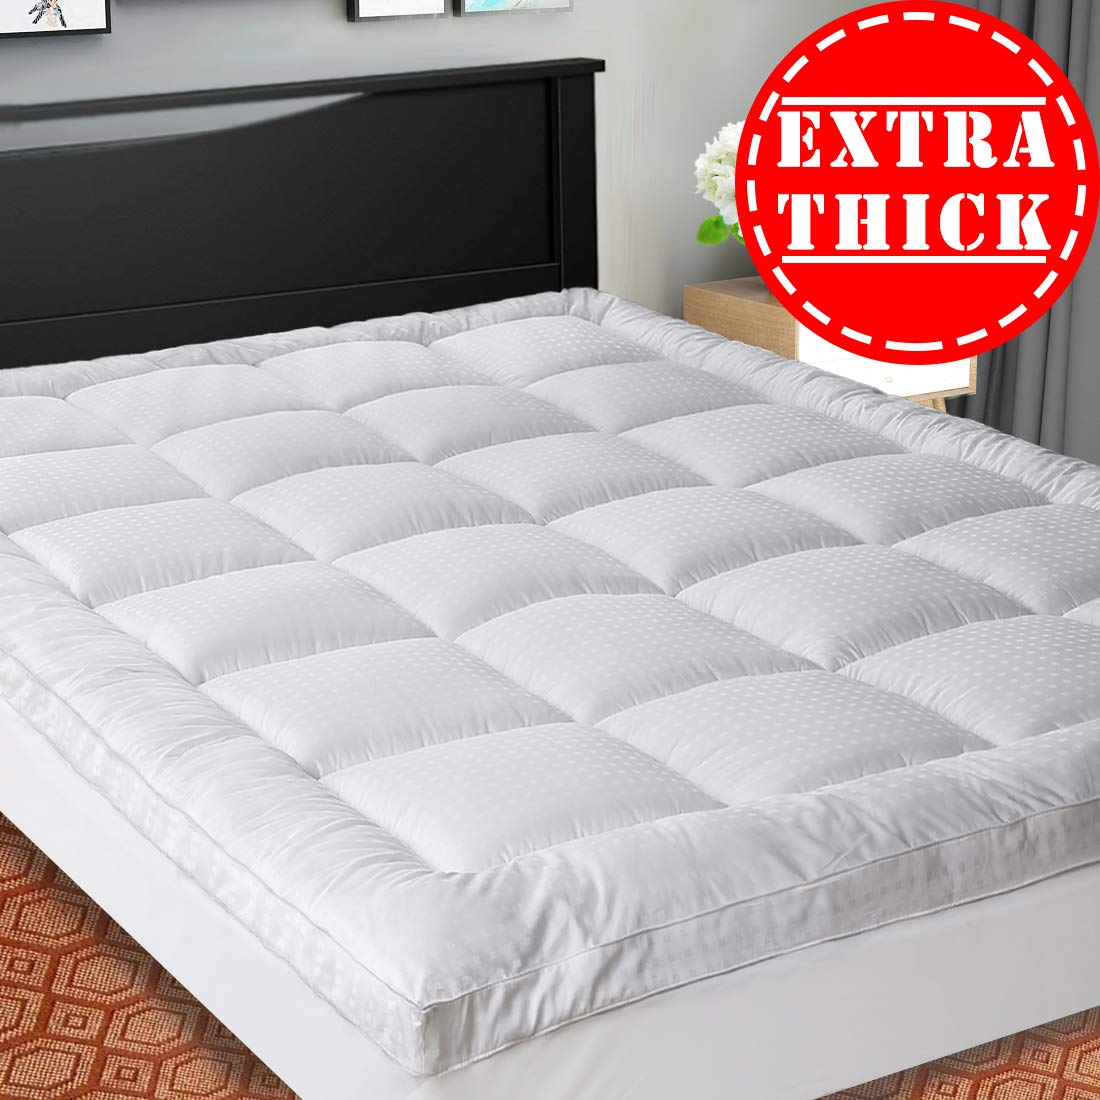 SOPAT Extra Thick Mattress Topper (Twin),Cooling Mattress Pad Cover,Pillow Top Construction (8-21Inch Deep Pocket),Double Border,Down Alternative Fill,Breathable